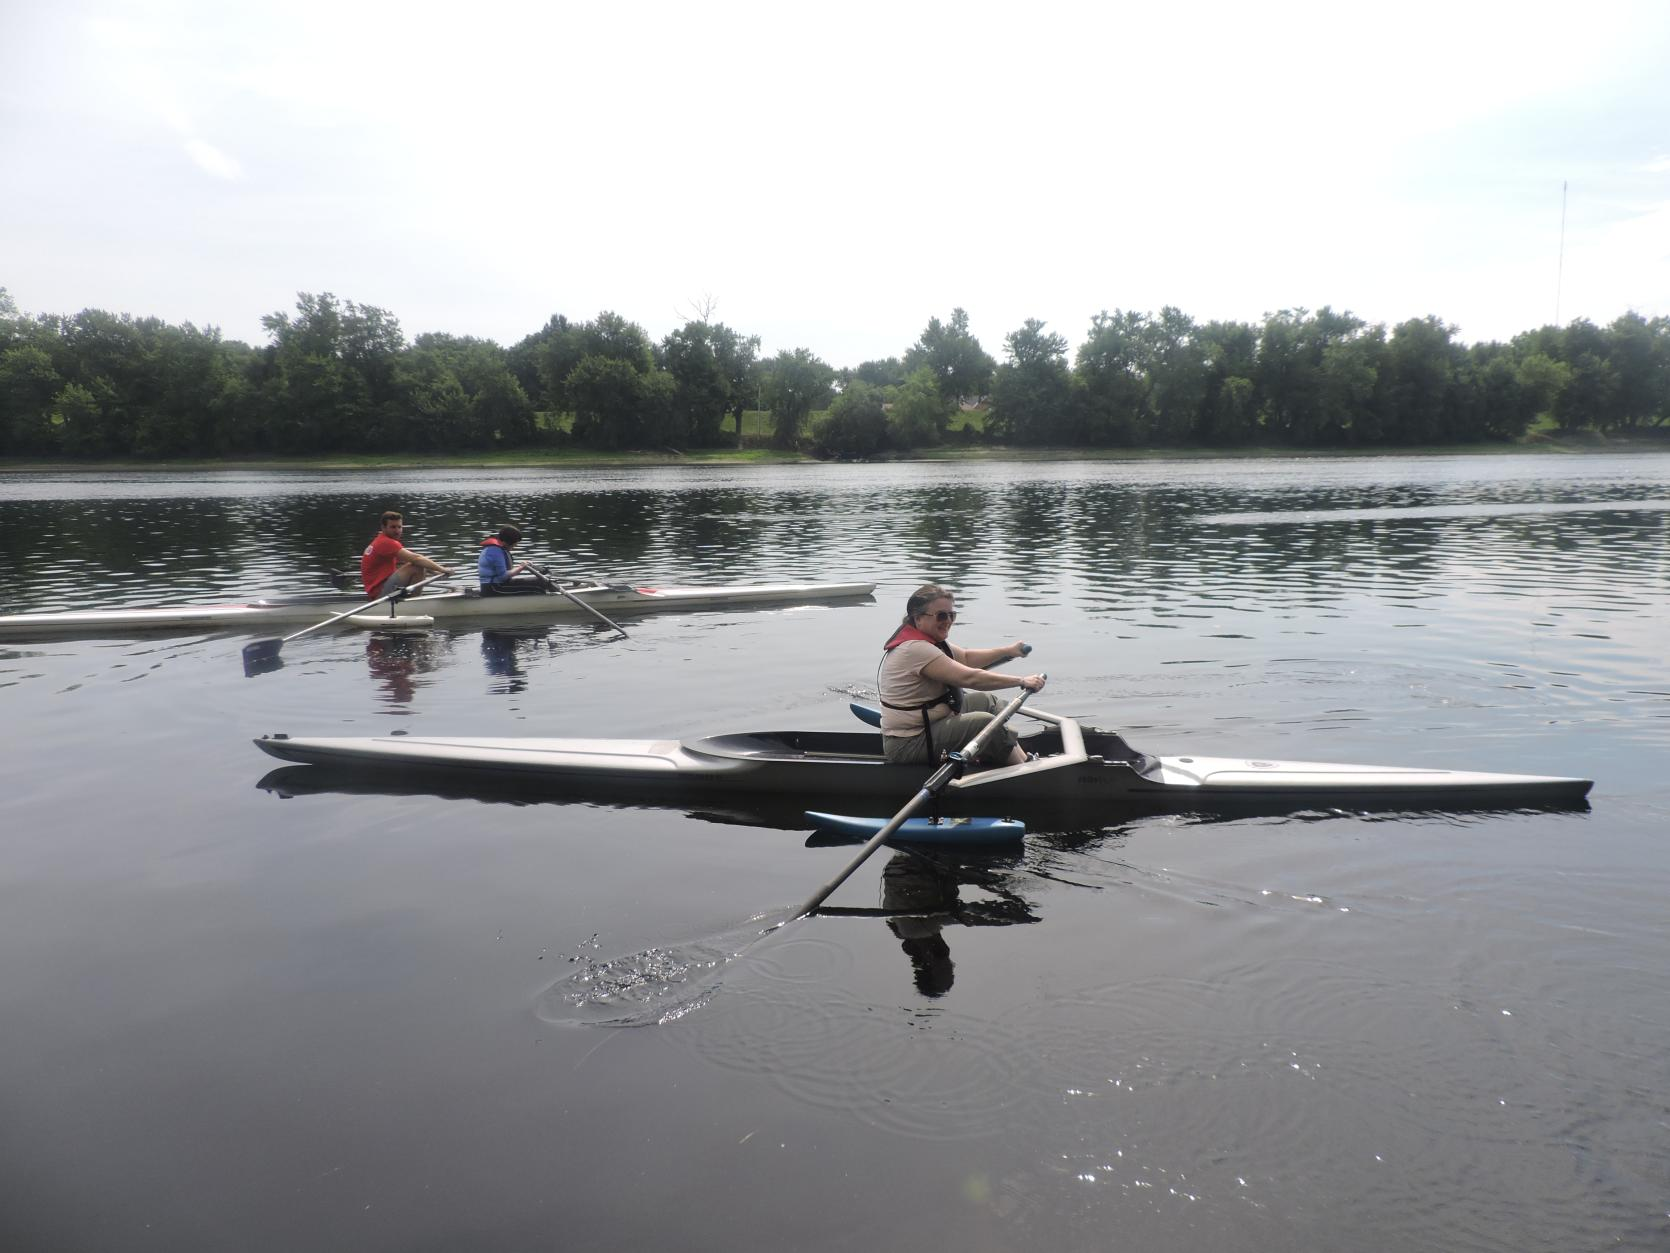 A photo of three rowers on the water. The rowers in the back are using a tandem rowing shell with pontoons. The rower in the front is using a single shell with pontoons.